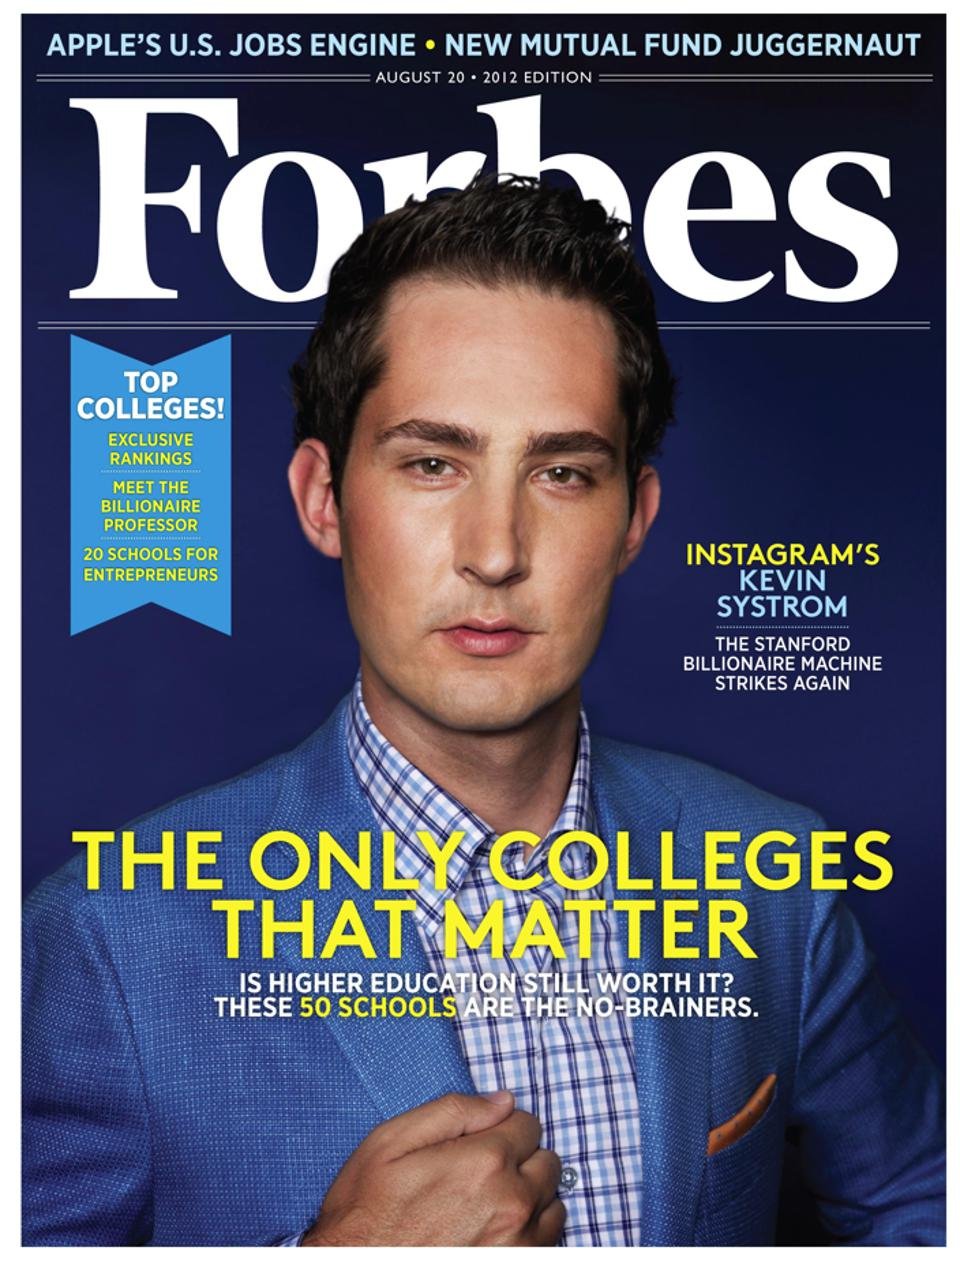 Instagram founder Kevin Systrom